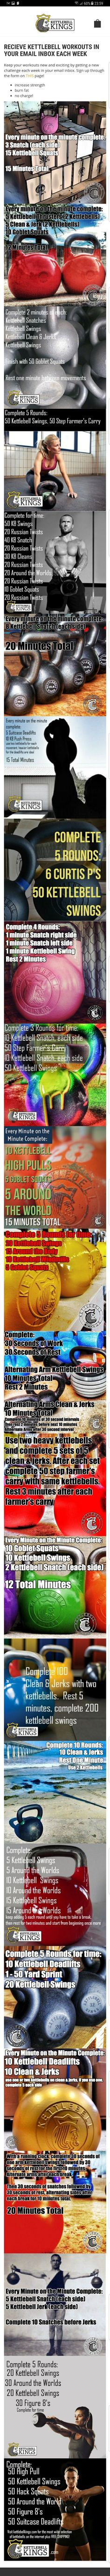 Kettlebell Workouts from info.kettlebellkings.com